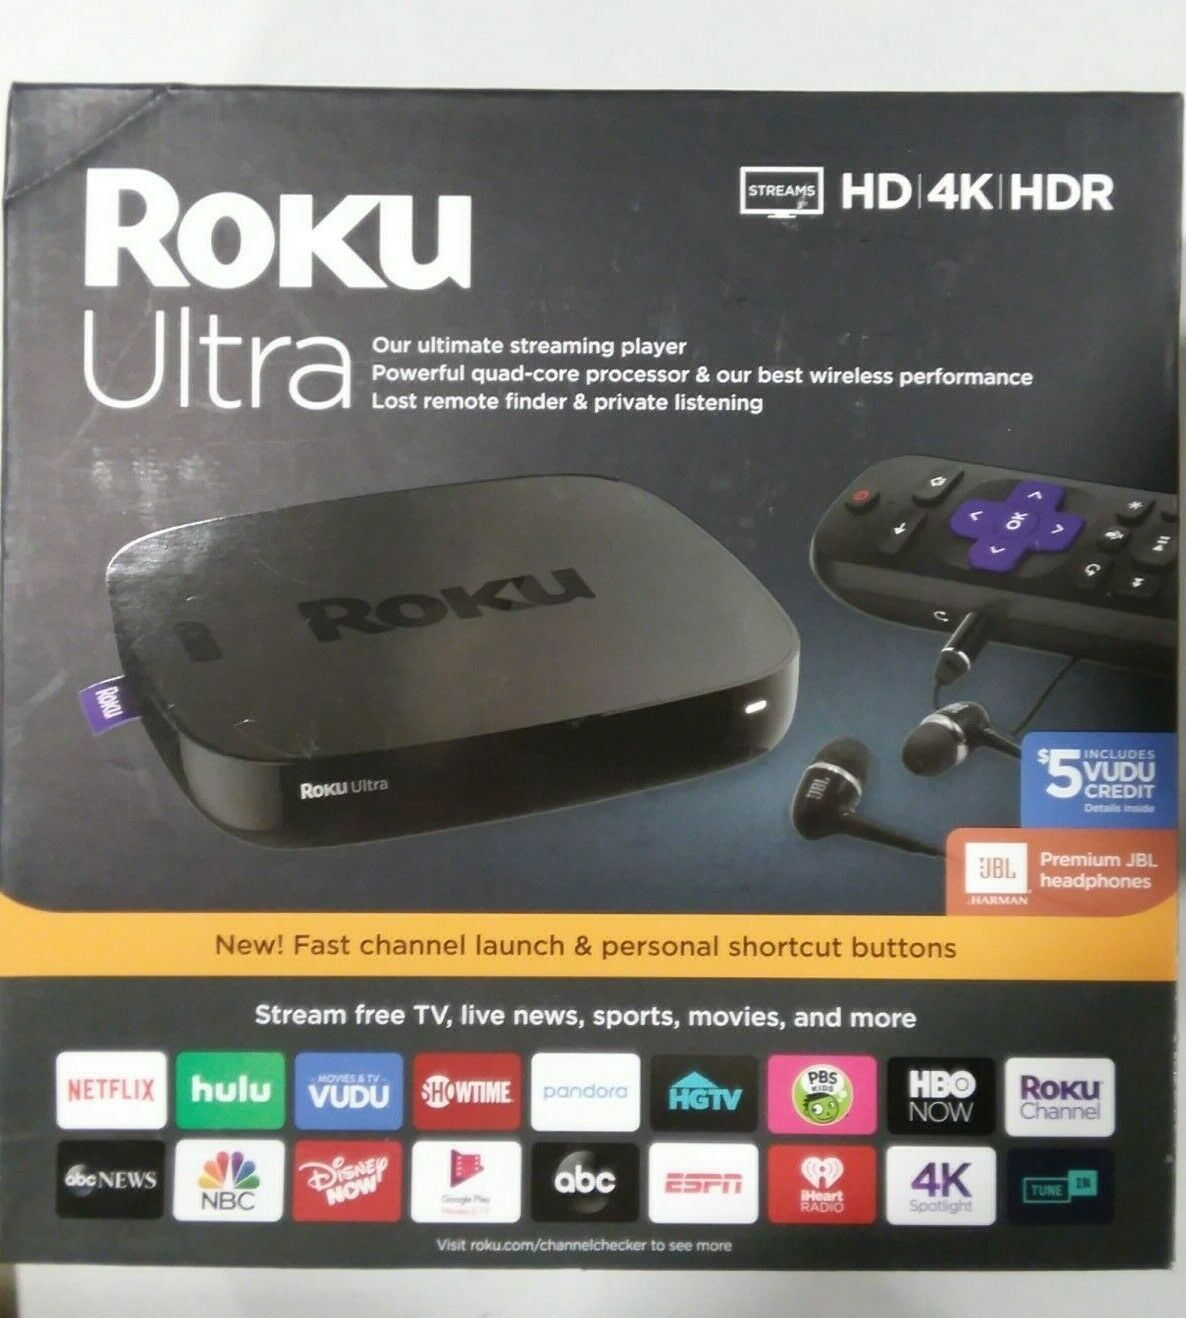 Roku Ultra Streaming Media Player 4K/HD/HDR Premium JBL Headphones headphones jbl media player premium roku streaming ultra